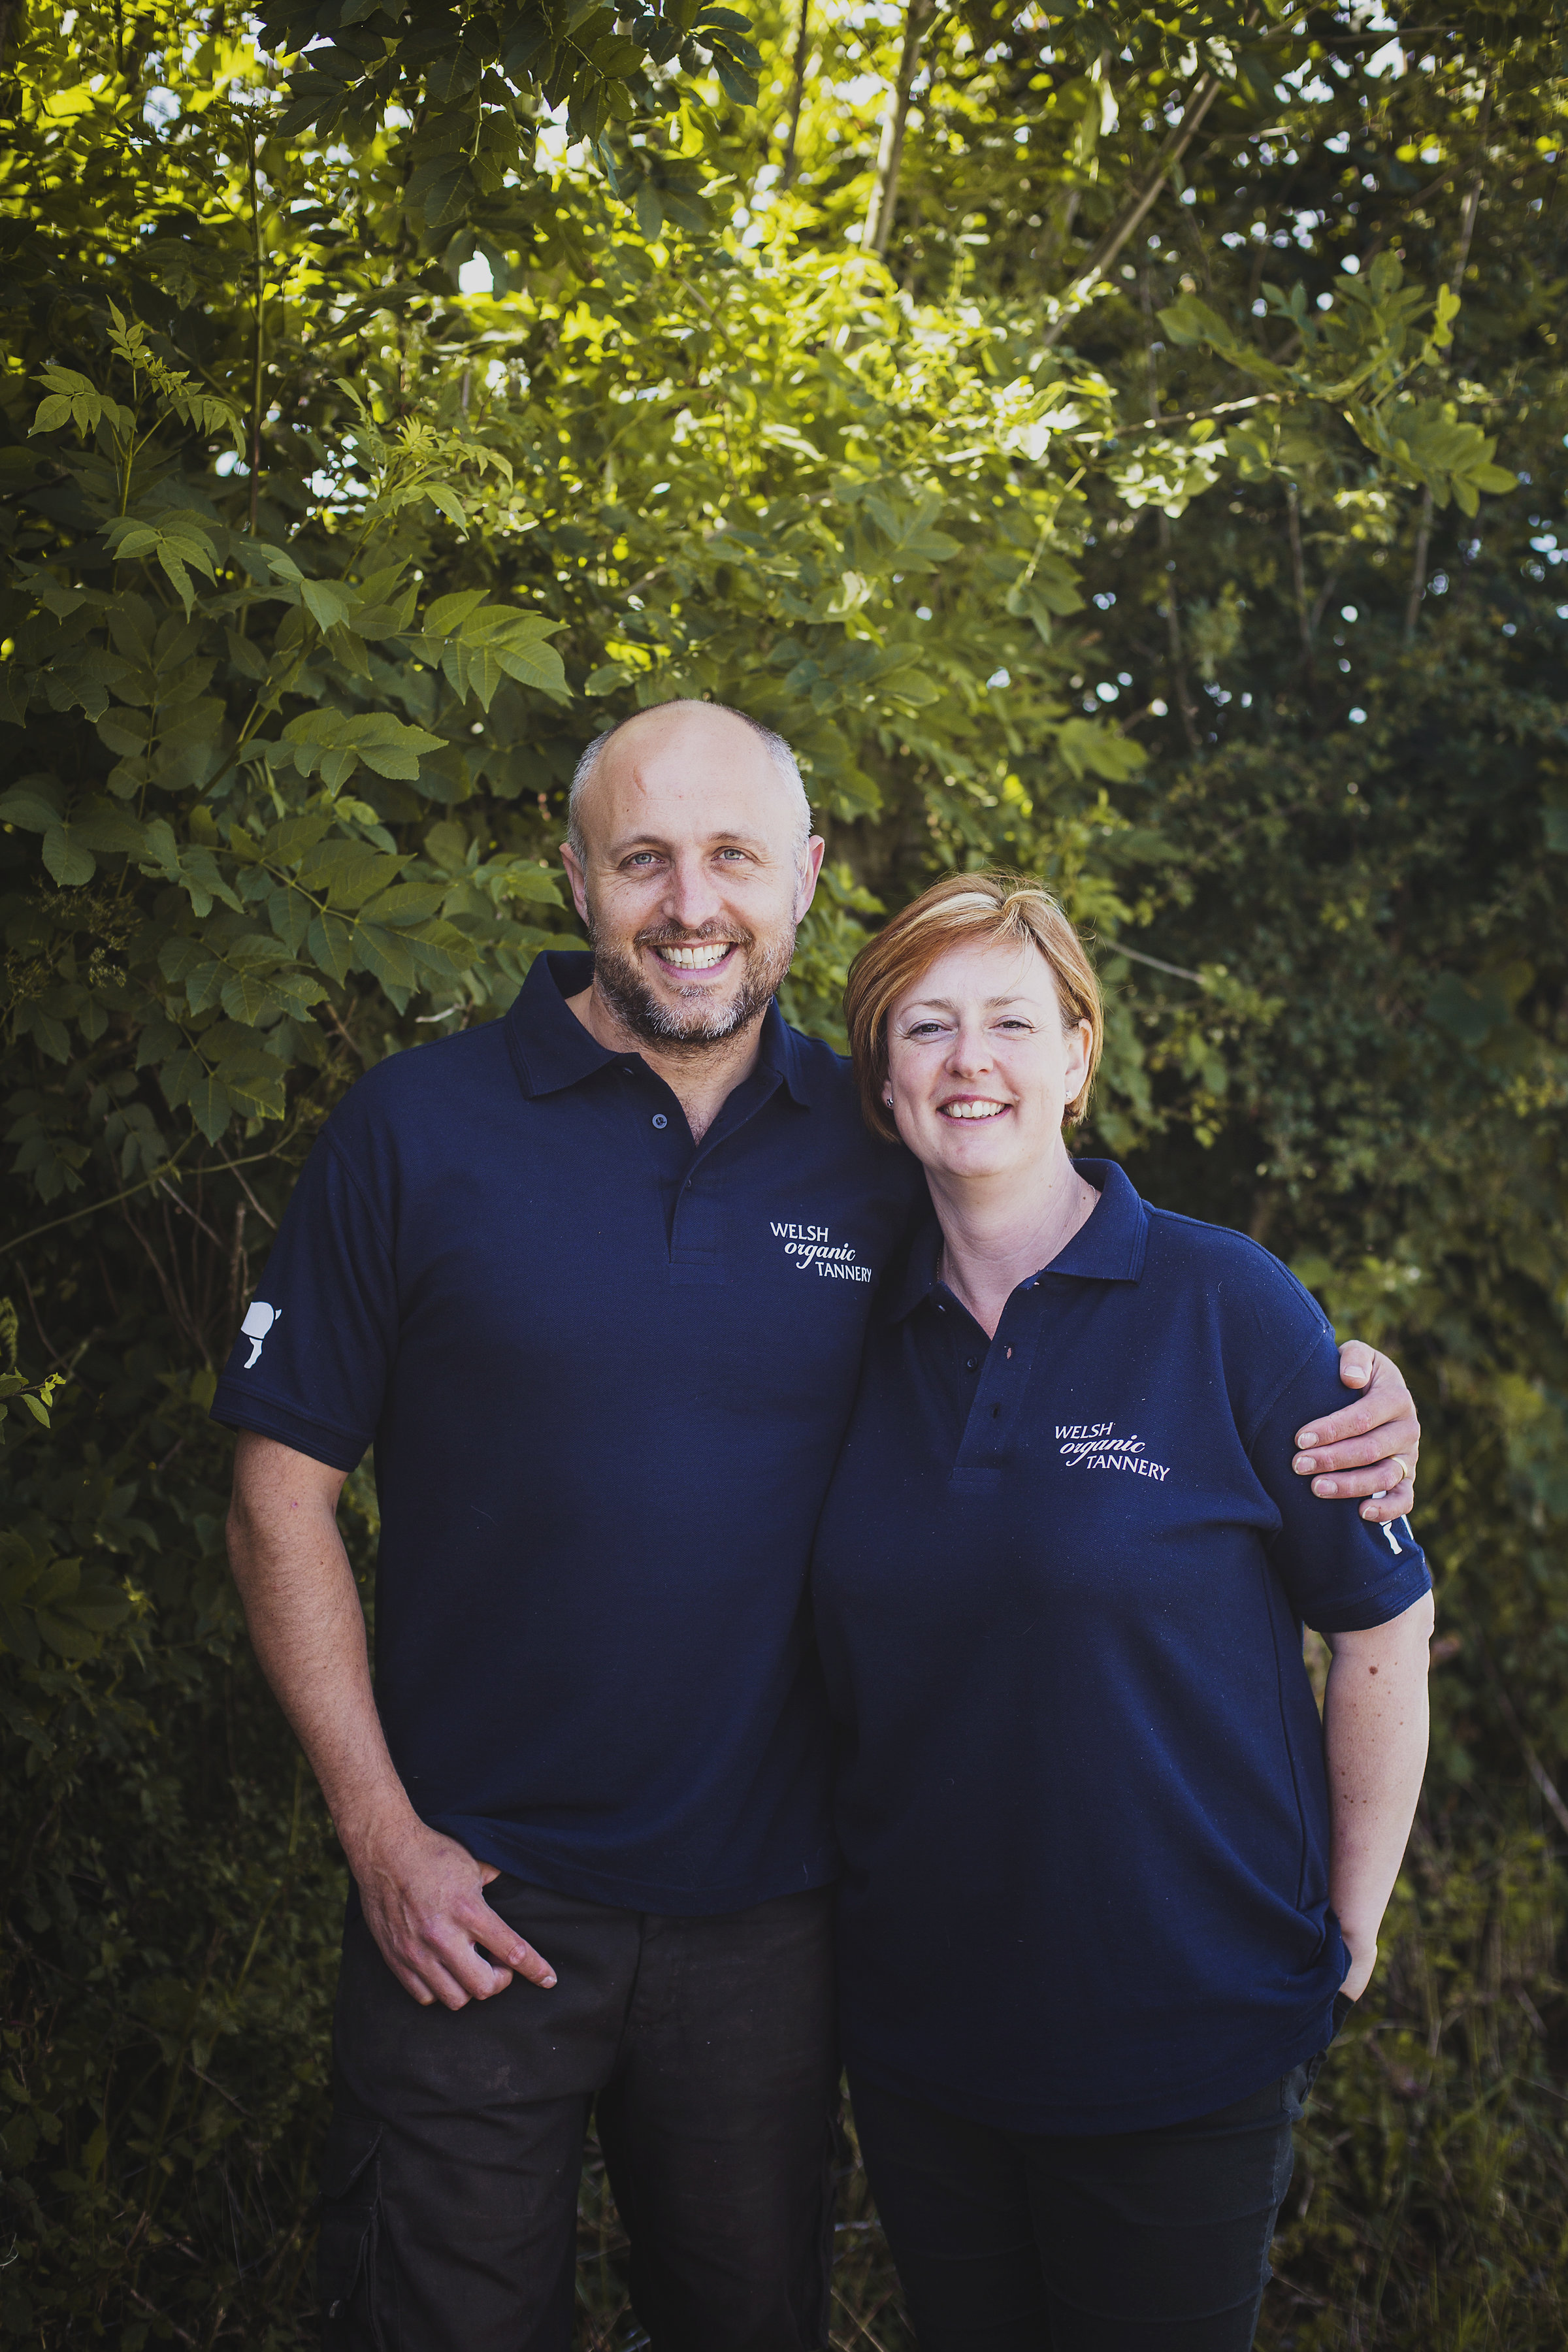 - Emma & Steve Allum run Wales' only certified organic tannery based at their smallholding on the Carmarthenshire, Pembrokeshire border - producing luxurious bespoke hand finished sheepskin and goatskin rugs.